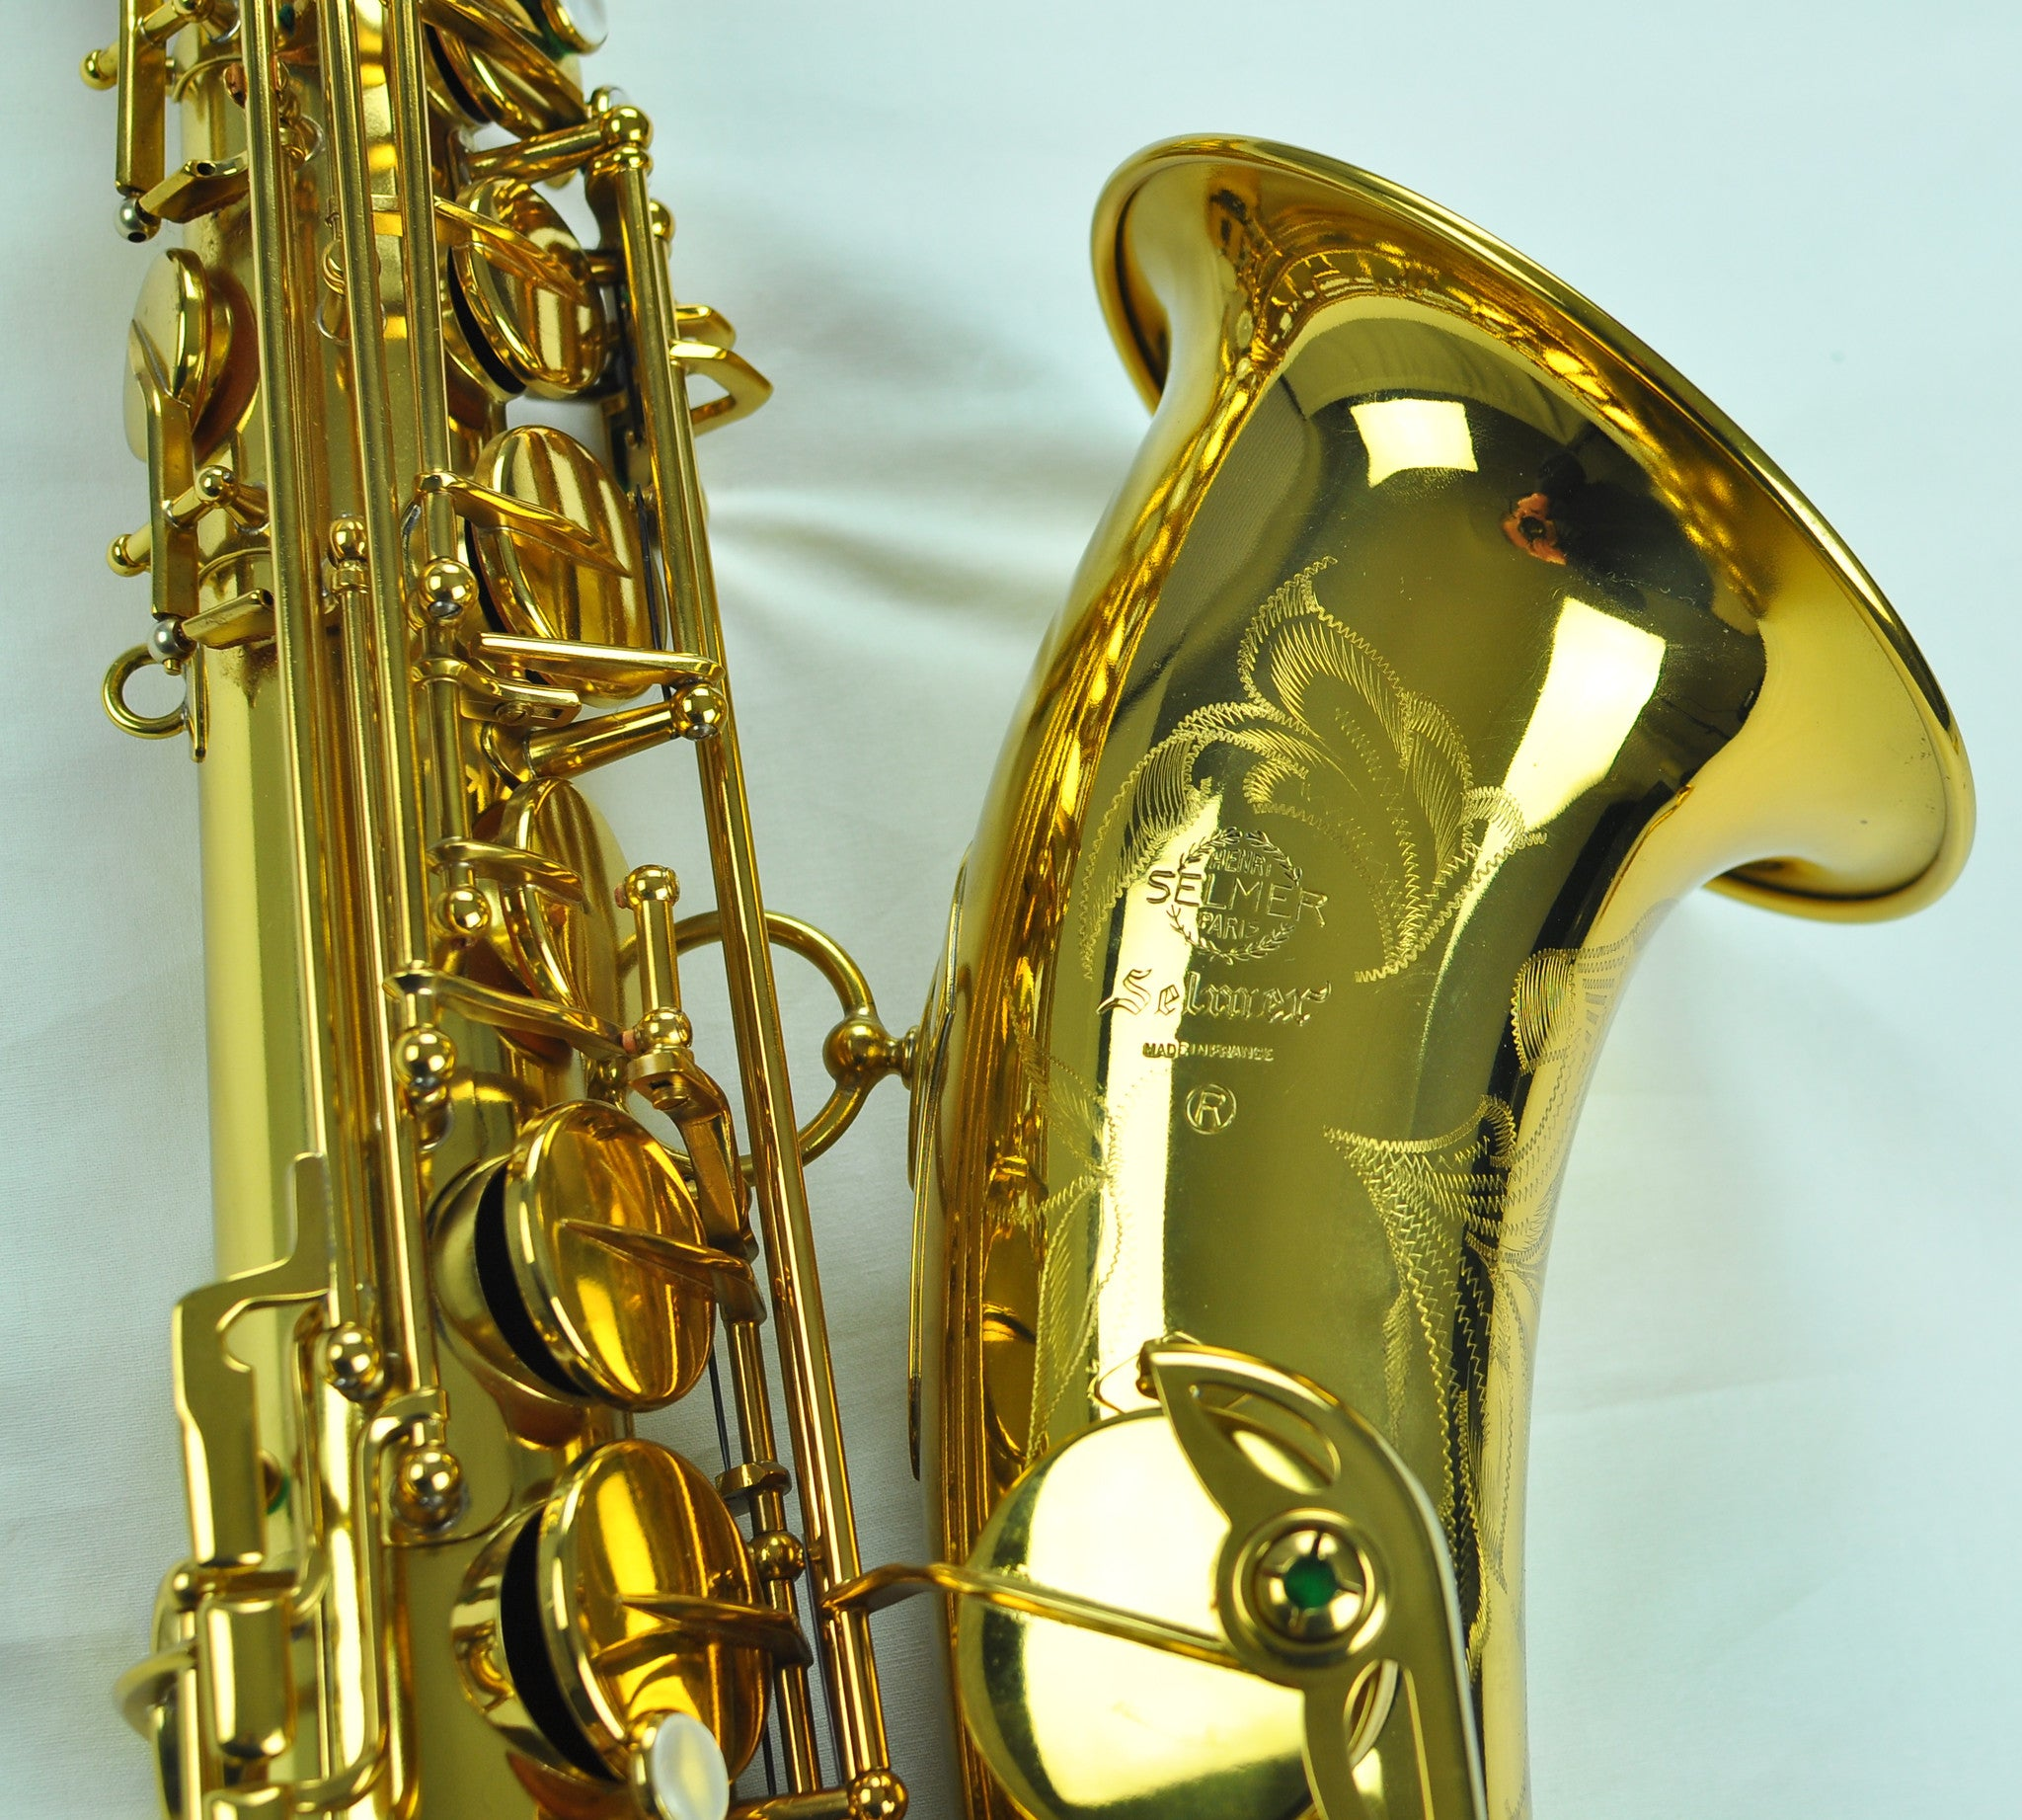 223,xxx Selmer Mark VI Tenor Saxophone With Original Lacquer Near Mint